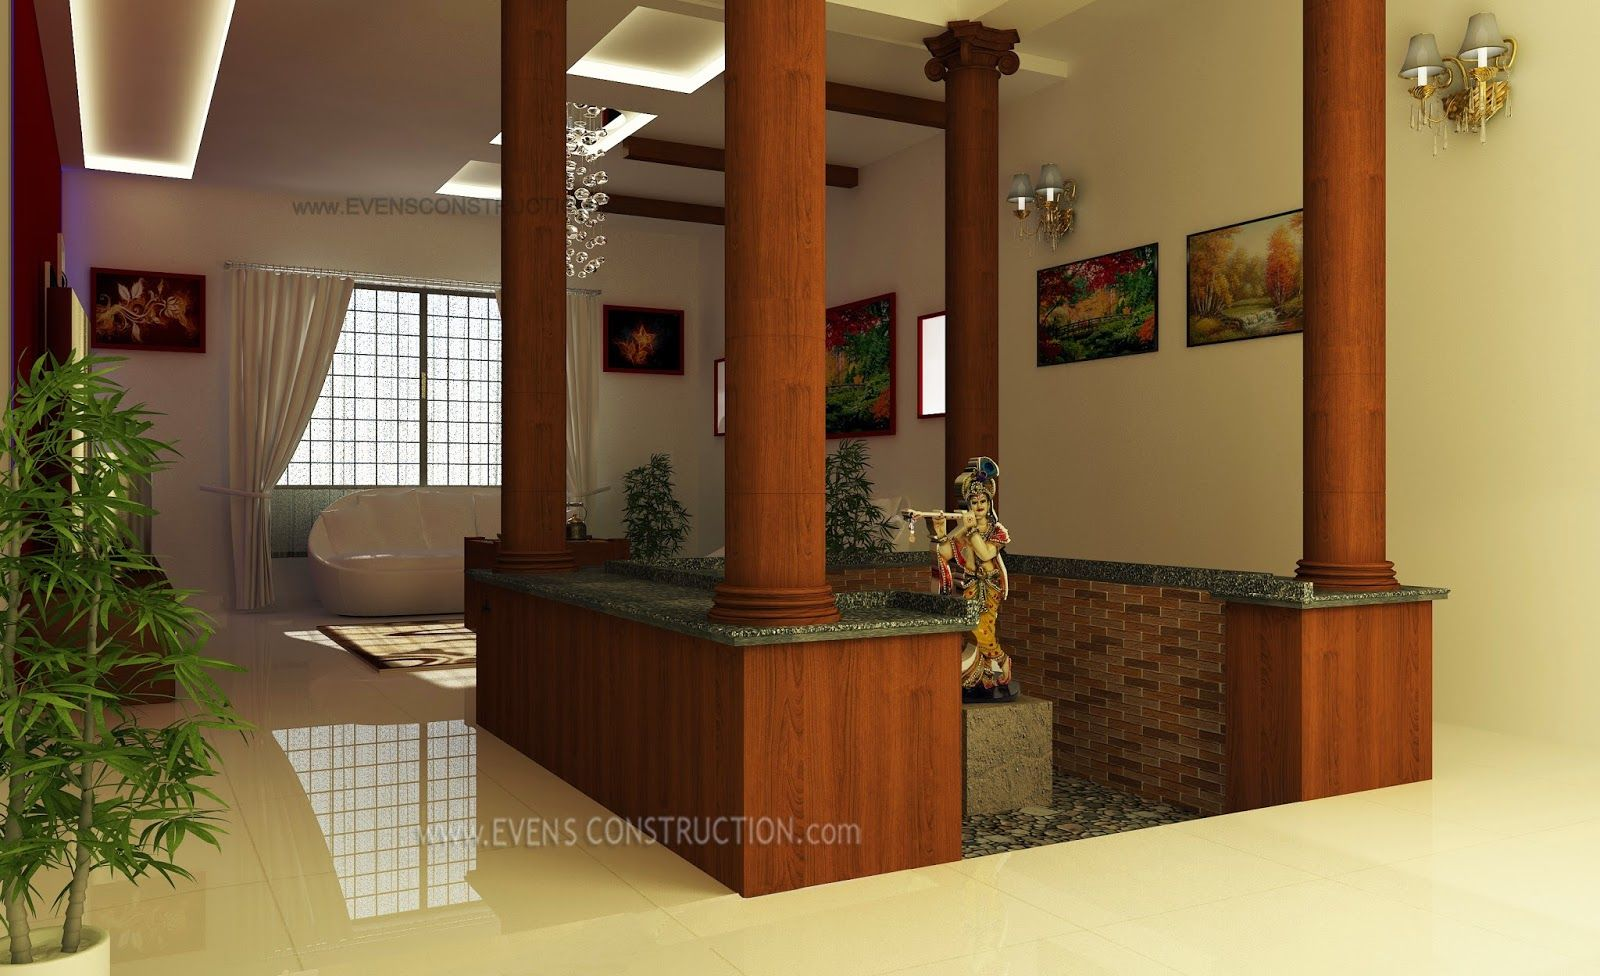 Center Courtyard For Kerala Home Wooden Pillers Small Near To Living Area False Ceiling With